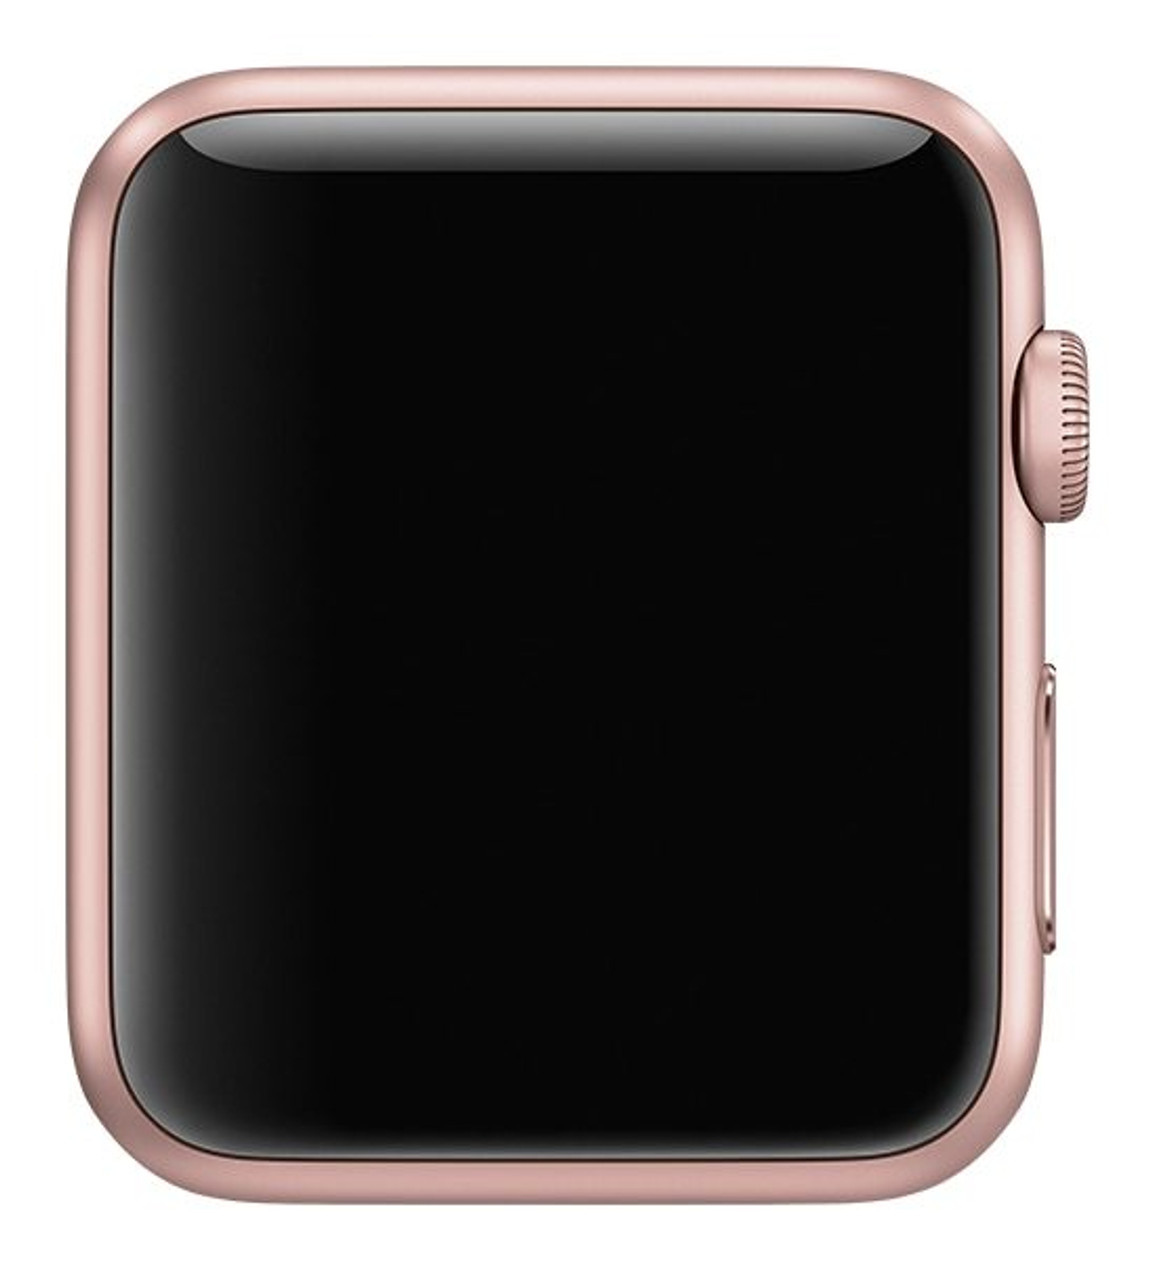 Apple Watch (Series 3) GPS + Cellular - 38mm Gold - Excellent Condition